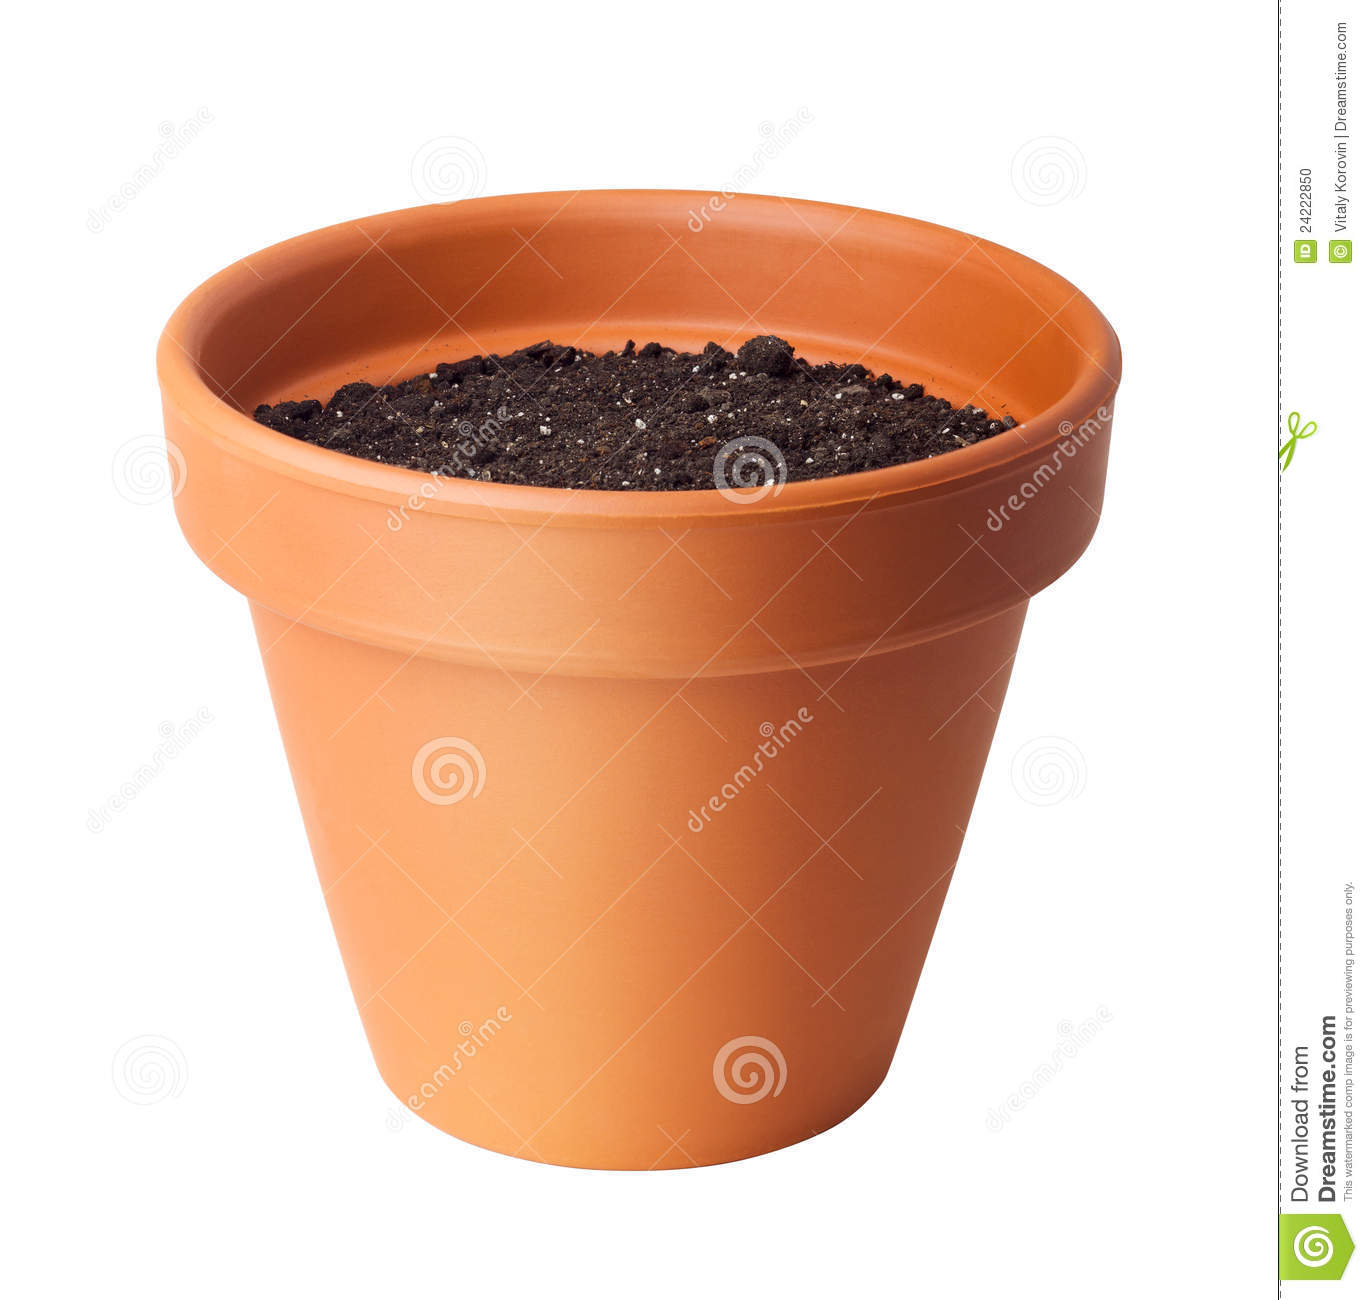 Flower pot with soil  sc 1 st  Dreamstime.com & Flower pot with soil stock photo. Image of pottery dirt - 24222850